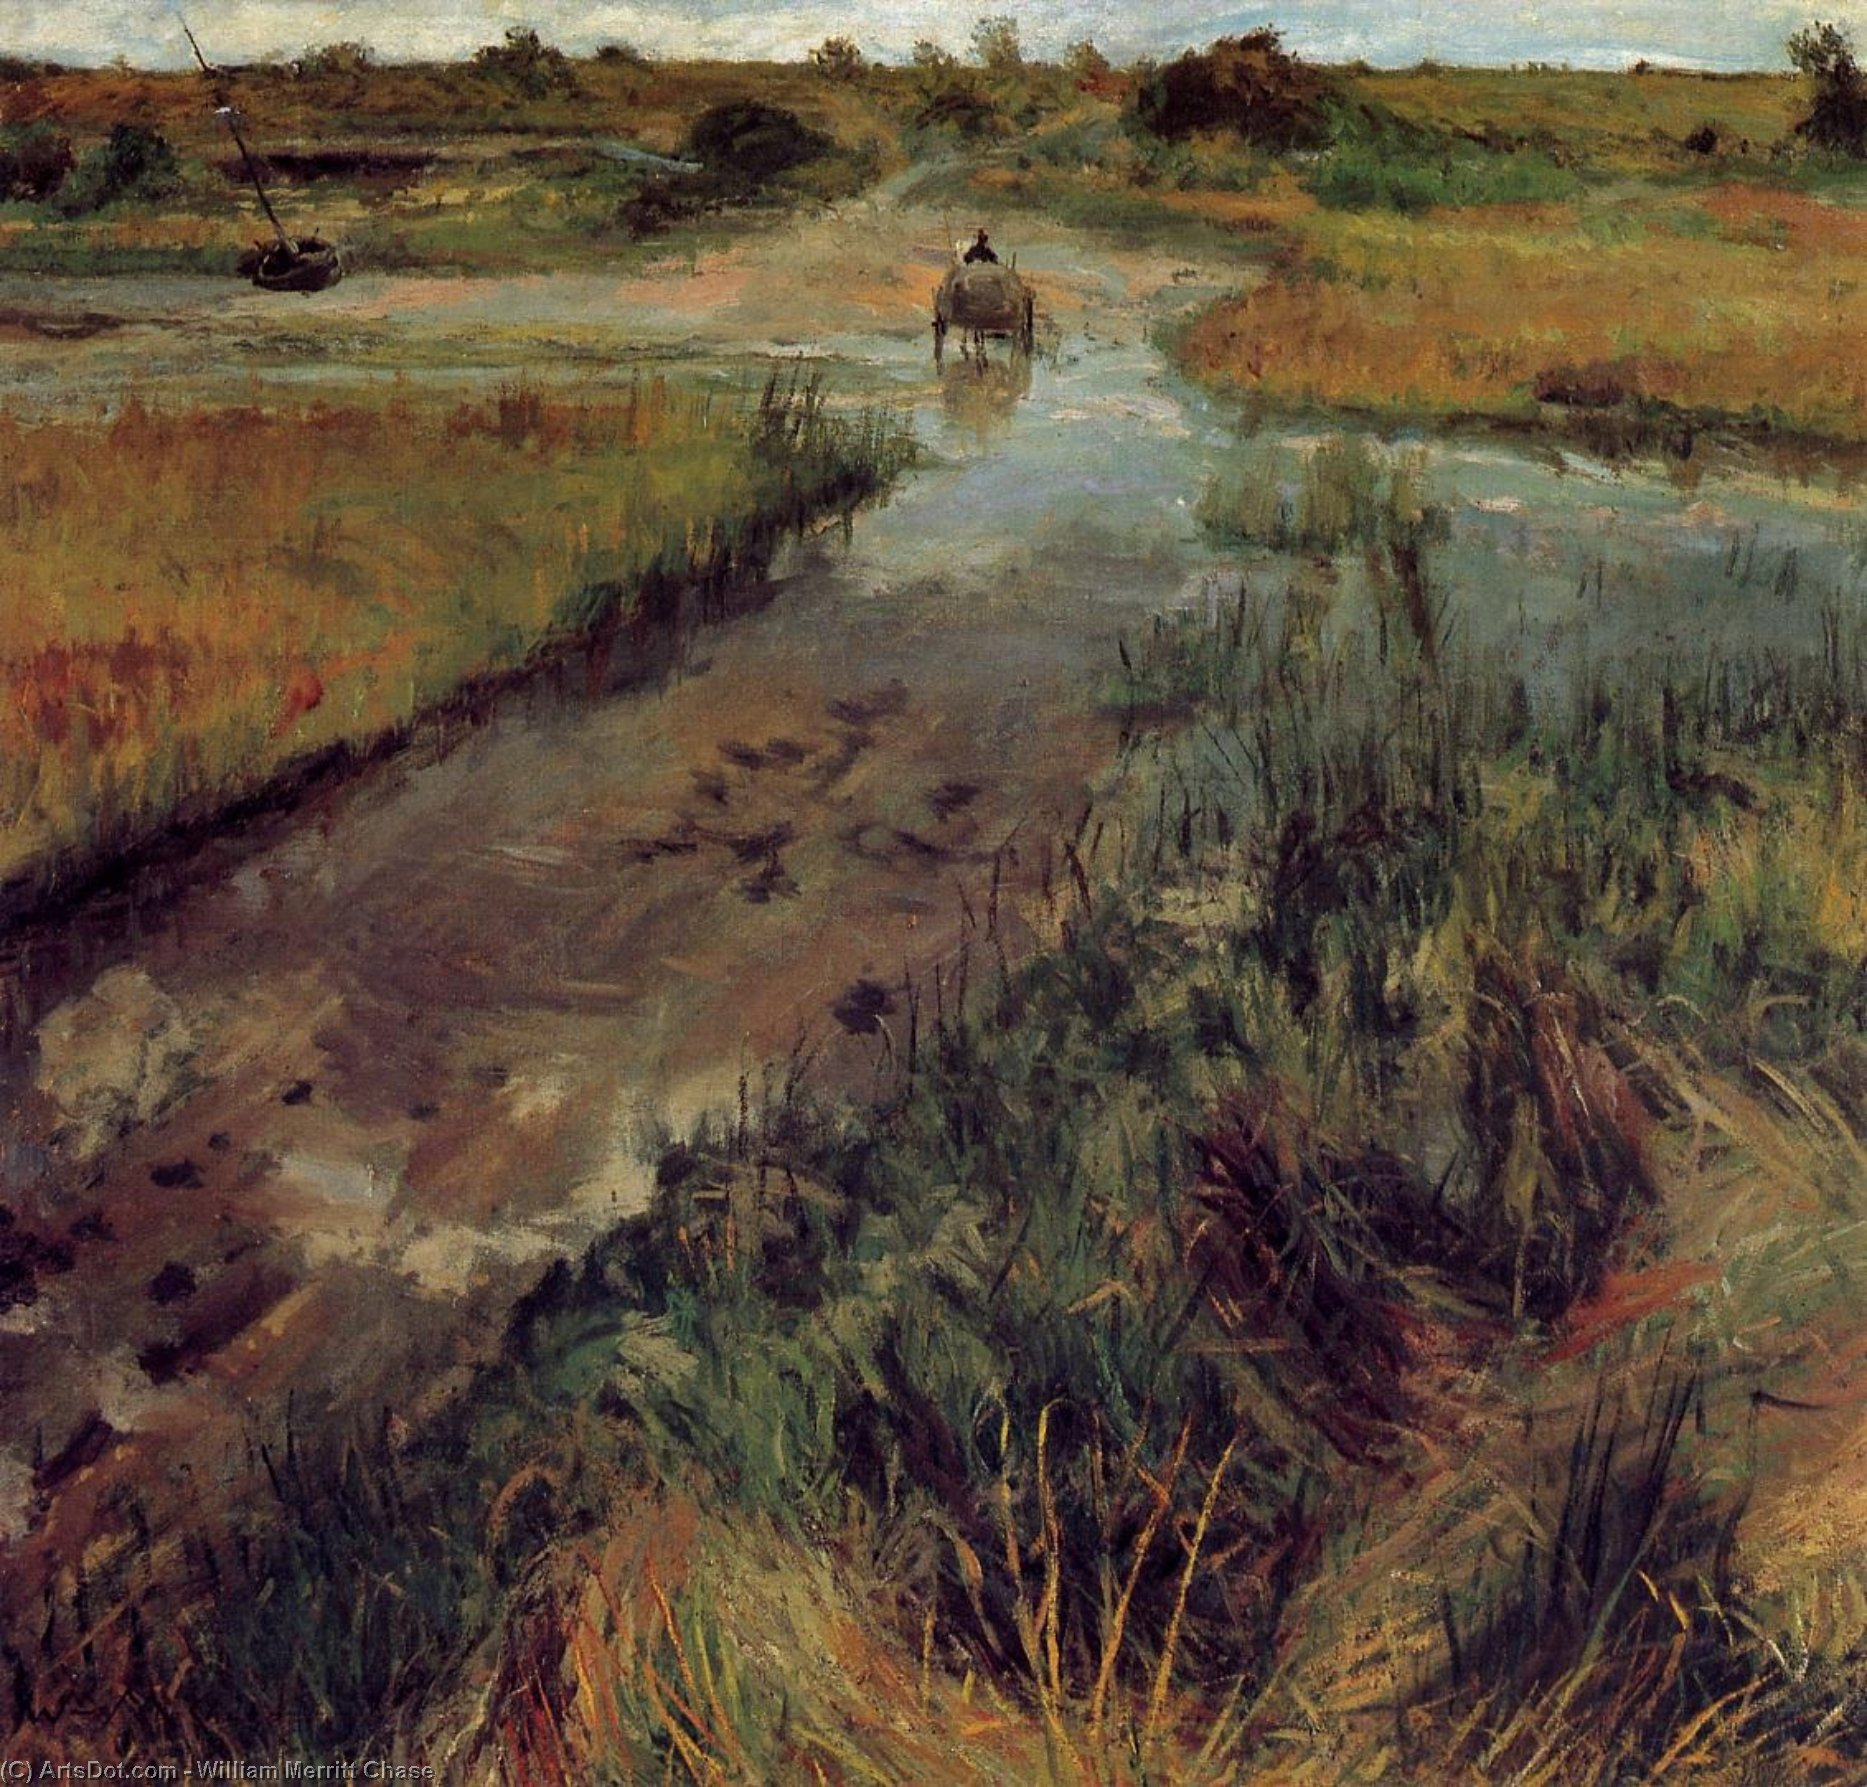 Corriente Hinchazón en Shinnecock, óleo sobre lienzo de William Merritt Chase (1849-1916, United States)